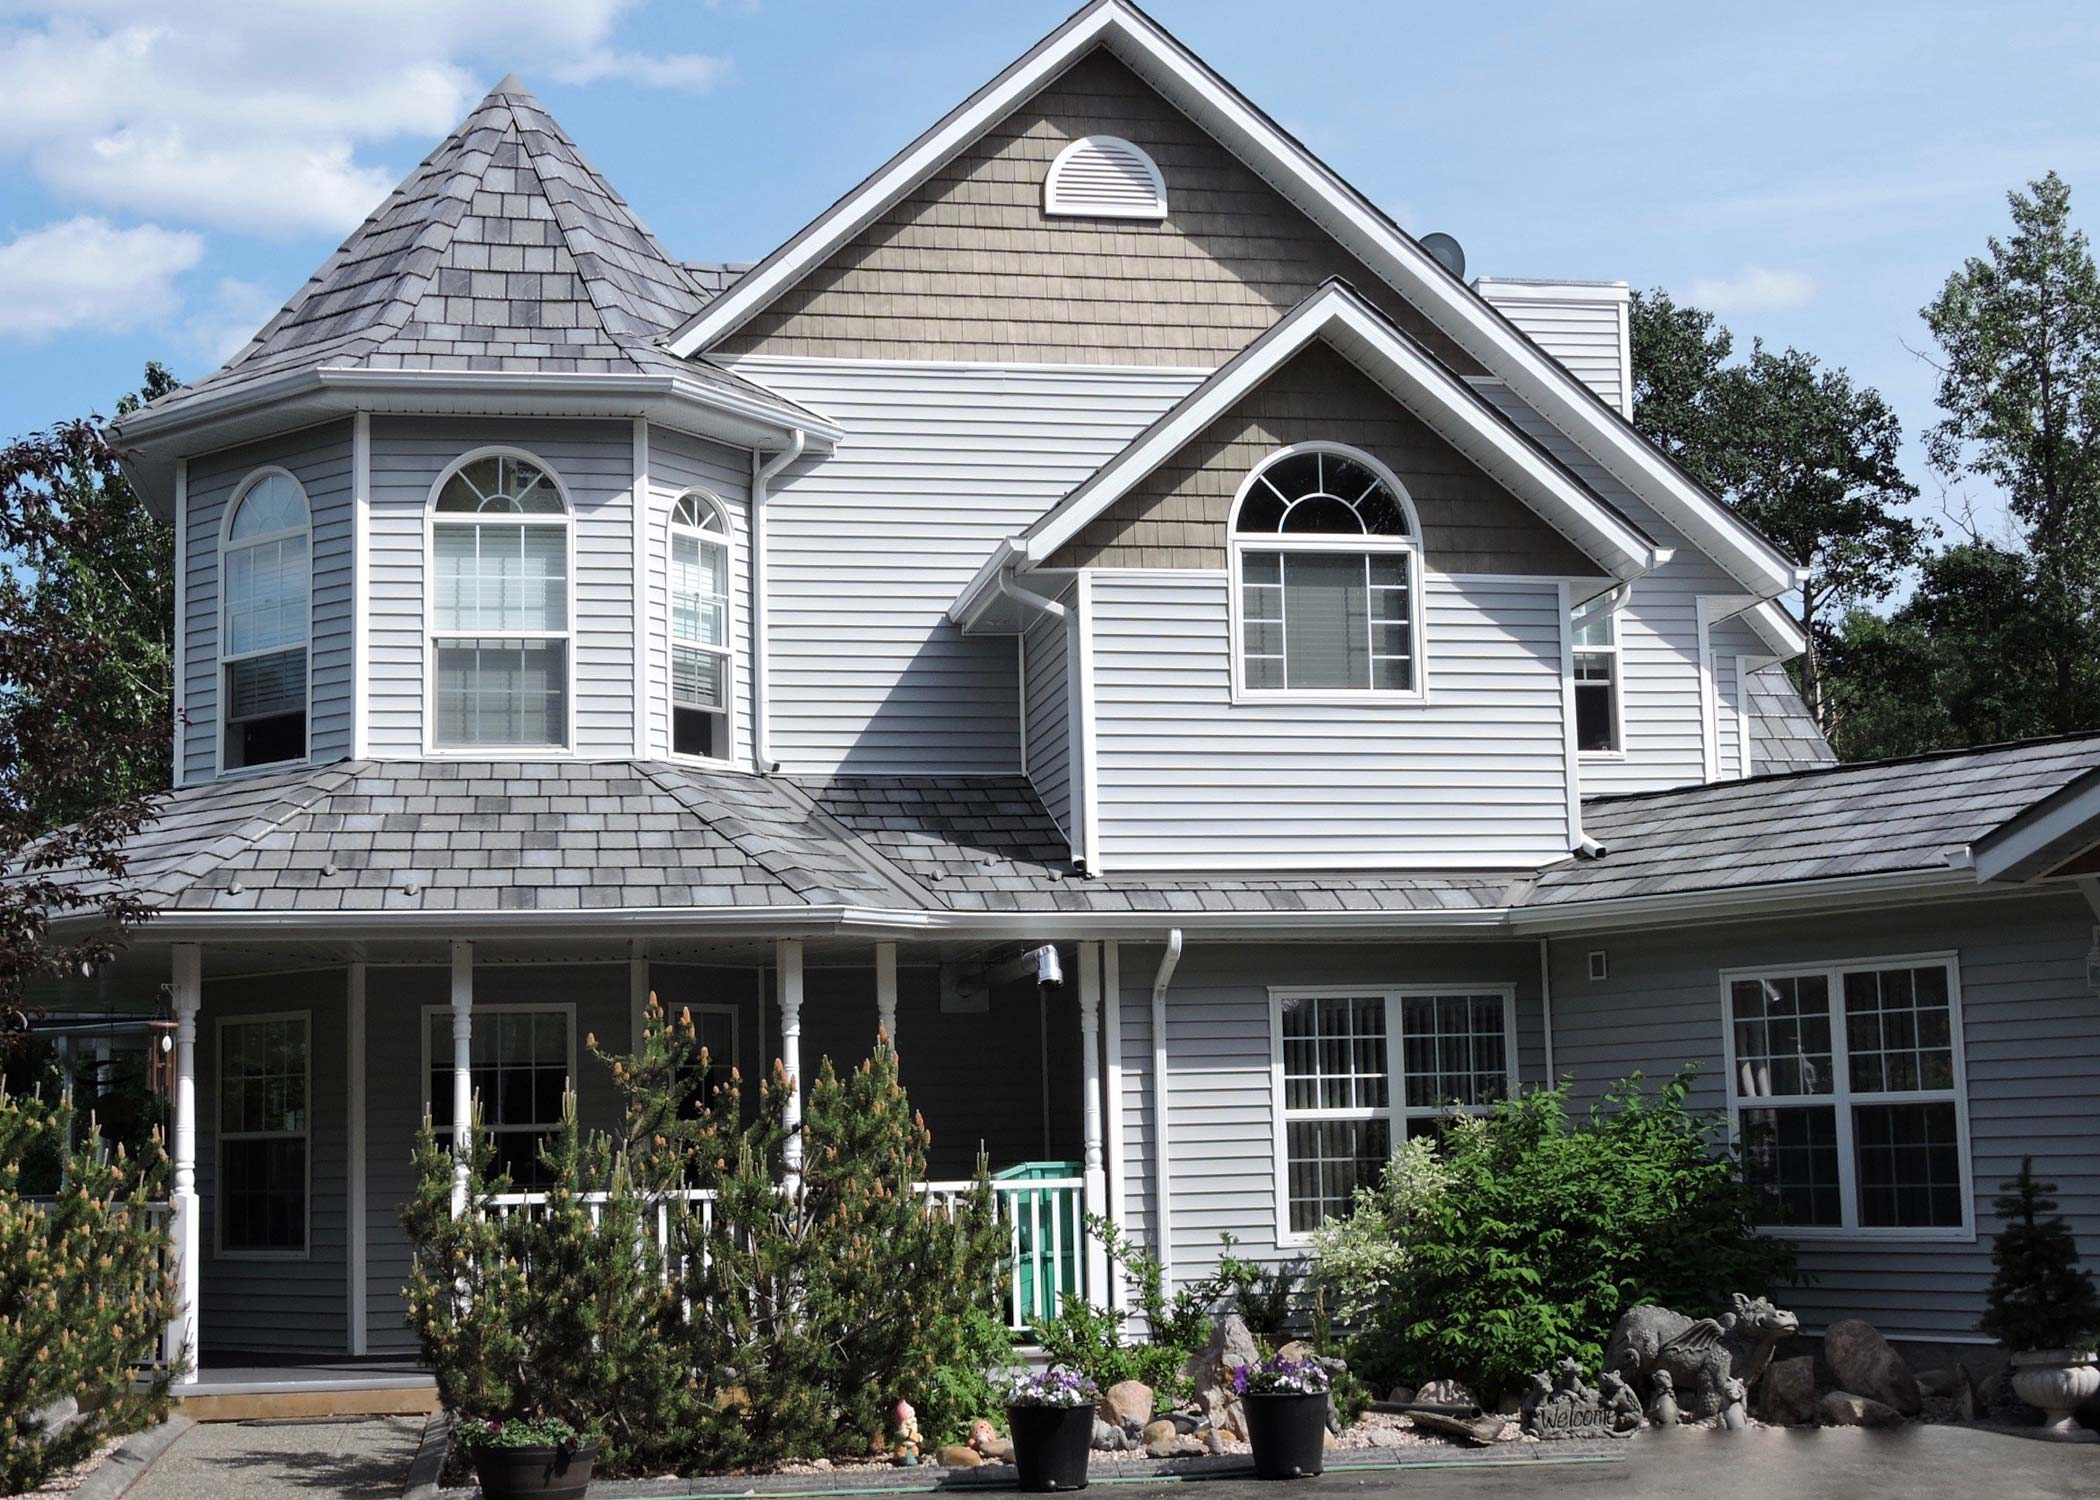 smart-home-building-systems-calgary-edmonton-roofing-siding-gallery